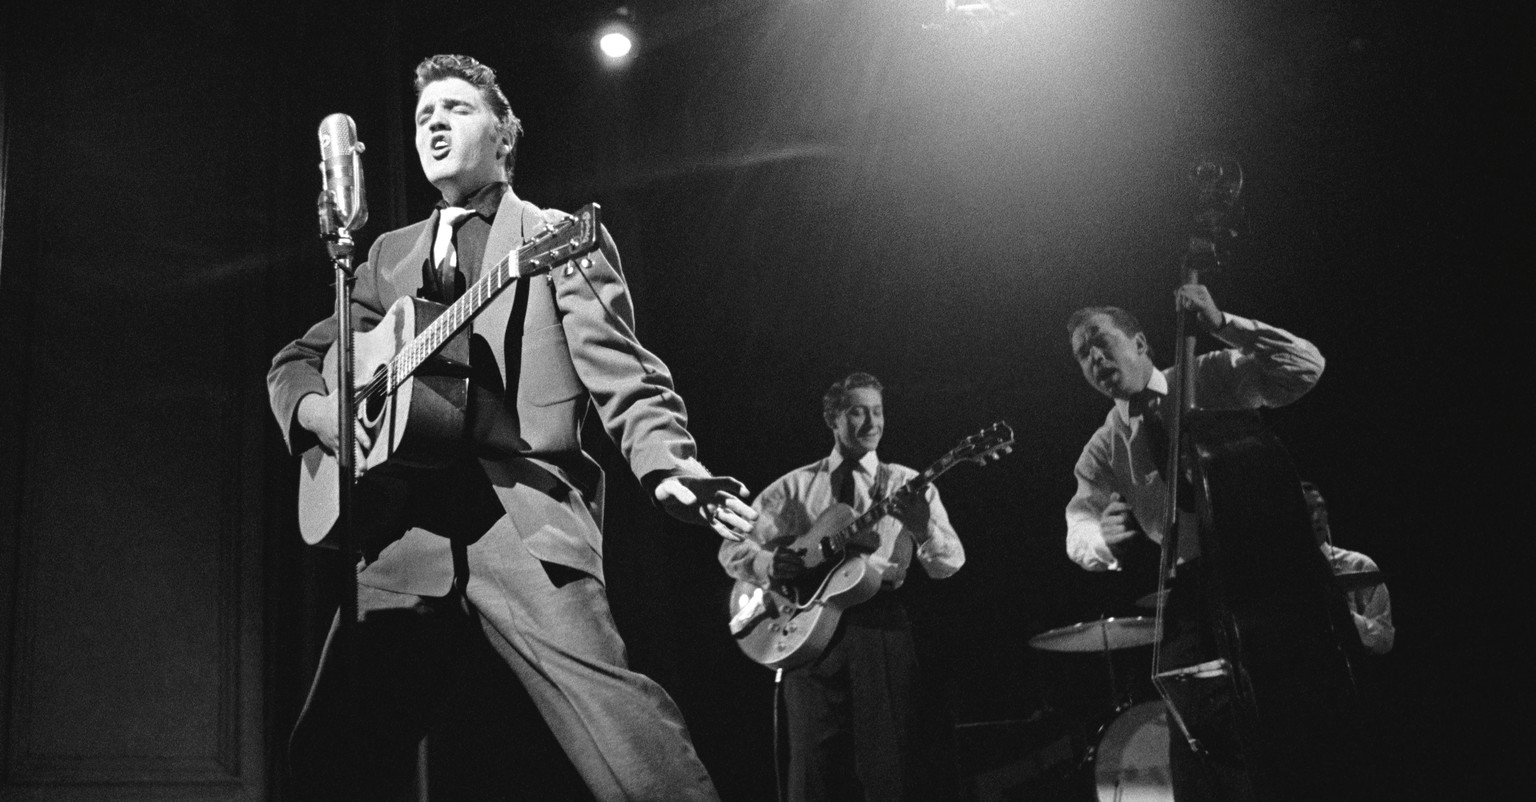 This March 17, 1956 photo provided by courtesy of Taschen shows, Elvis Presley, left, and band members, Scotty Moore, on guitar, Bill Black on bass, and DJ Fontana on drums, during a live performance on